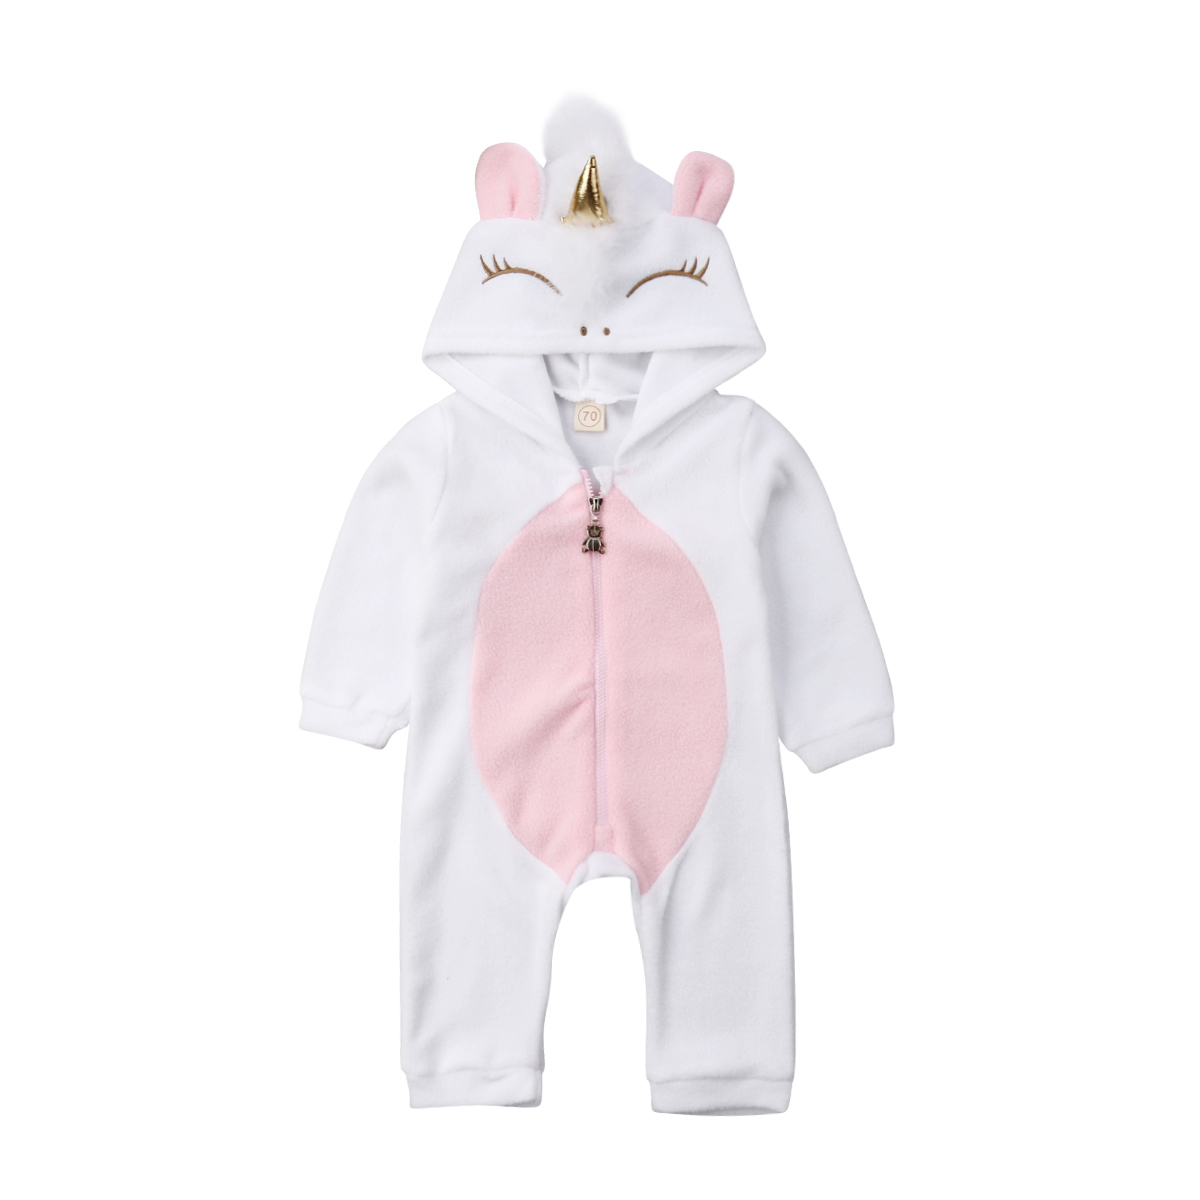 269d5d4e37a 2019 Newest Style Lovely 3D Unicorn Newborn Baby Girls Flannel Romper  Jumpsuit Outfits Autumn Spring Clothes